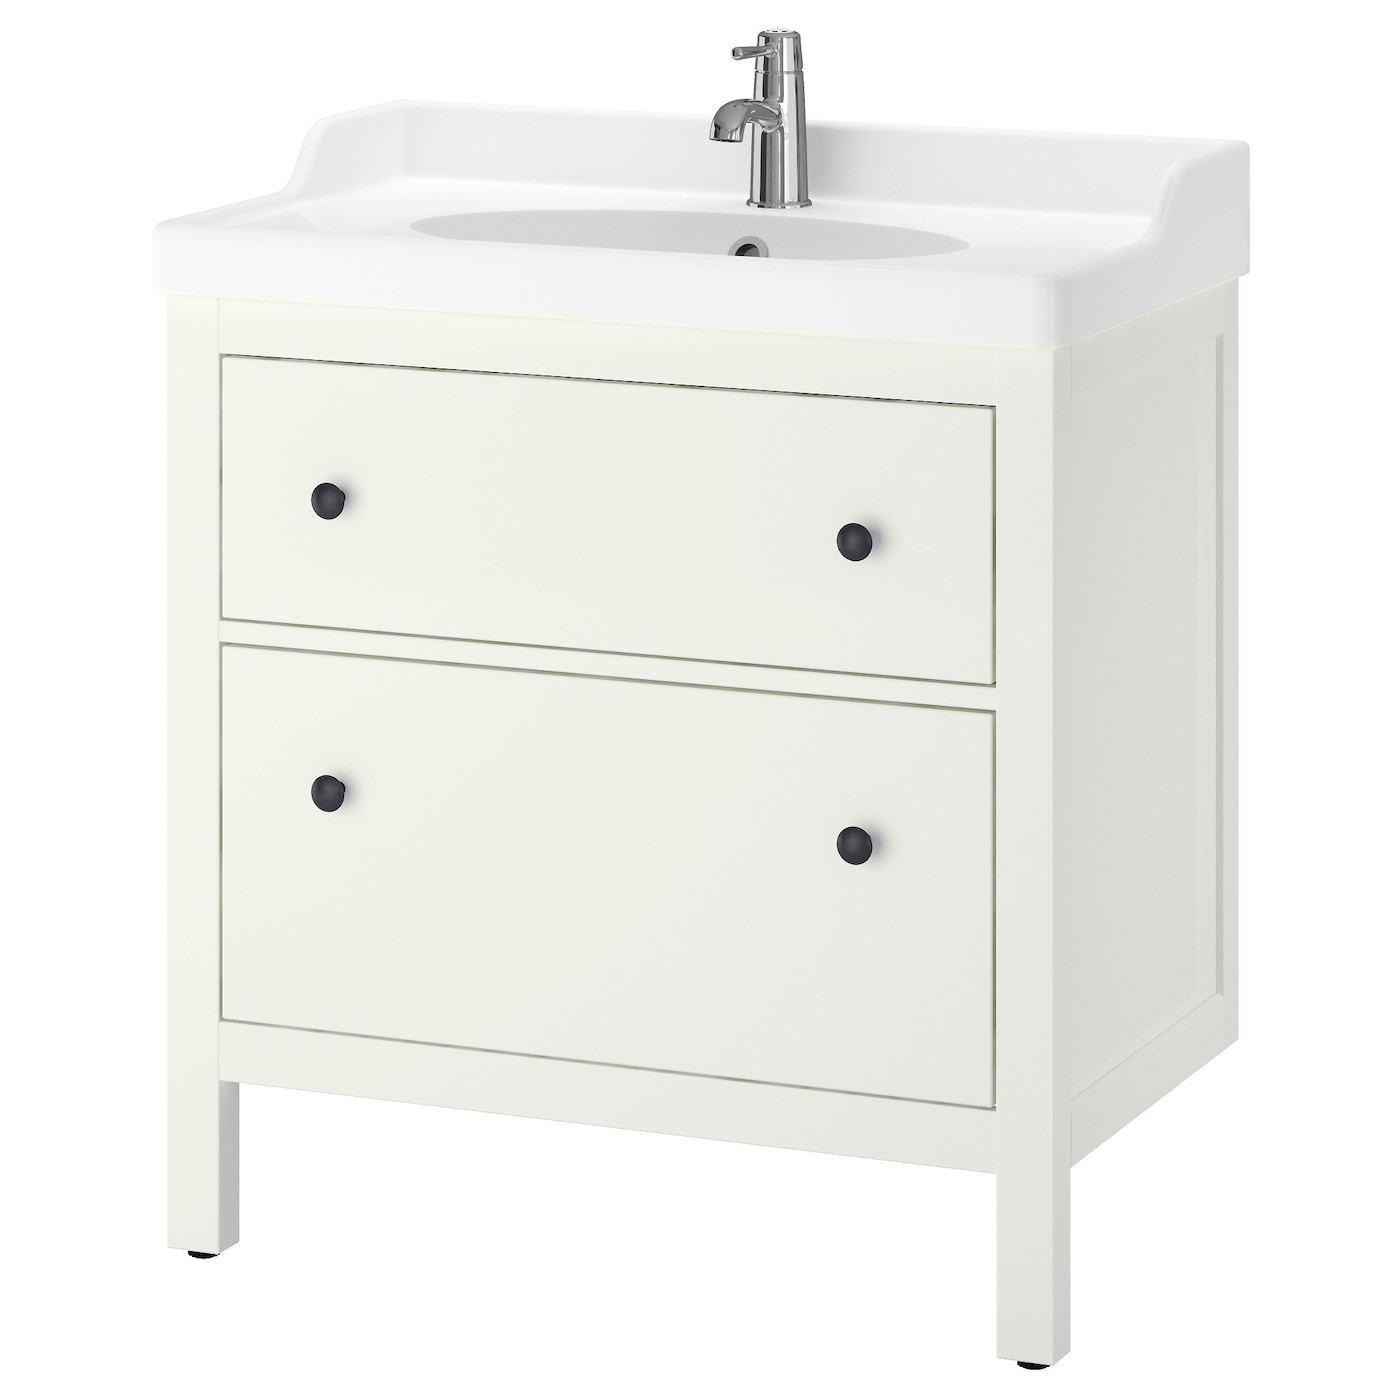 hemnes r ttviken meuble lavabo 2tir blanc 80x49x89 cm ikea. Black Bedroom Furniture Sets. Home Design Ideas